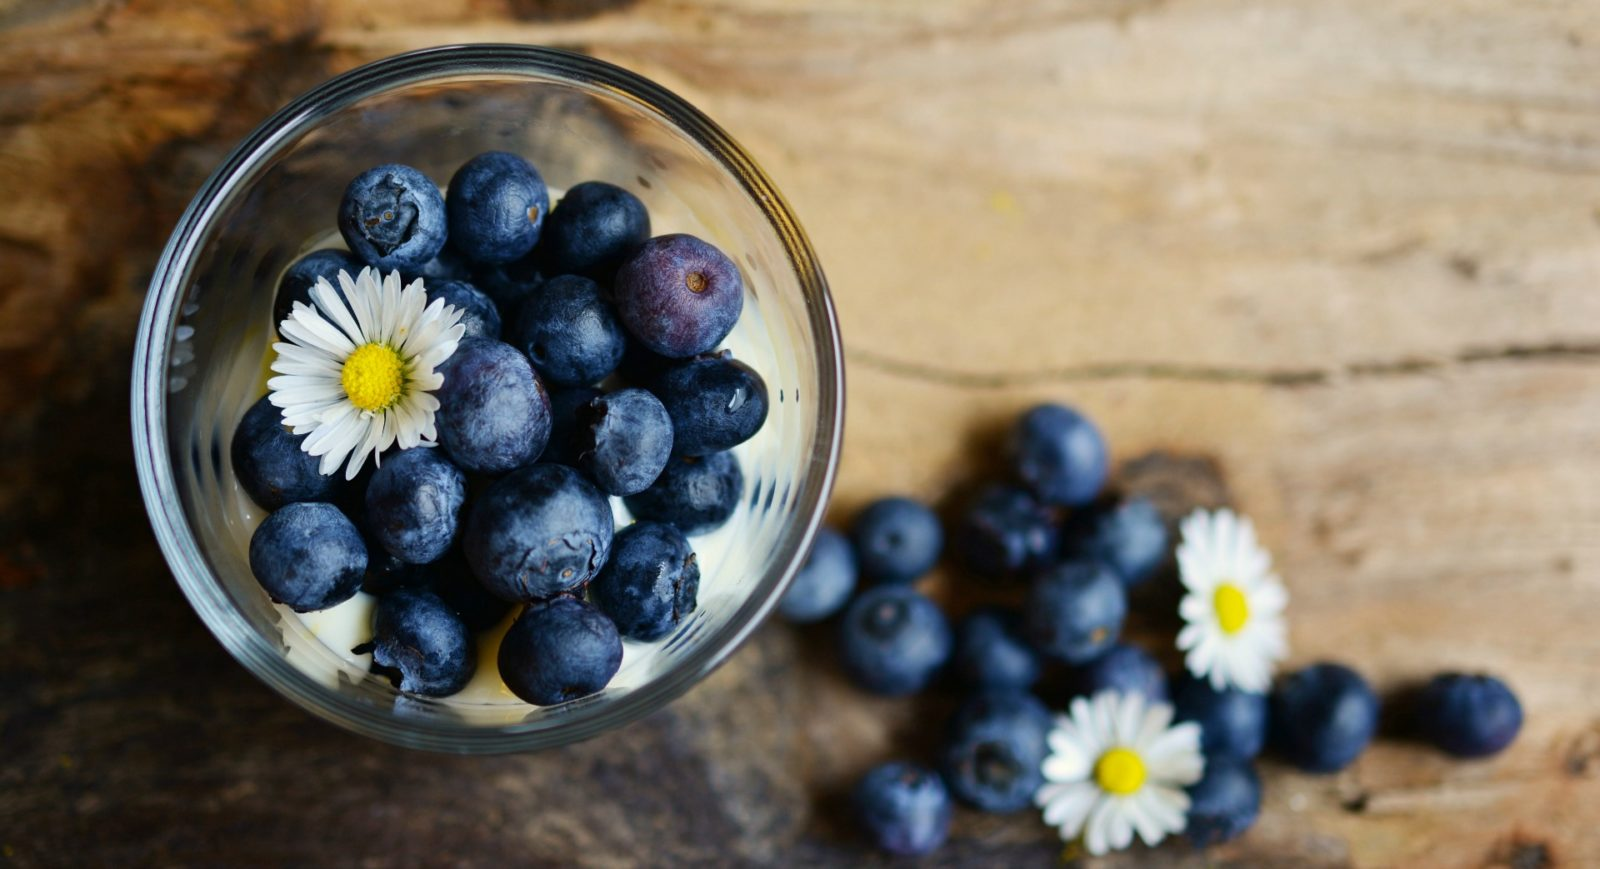 Blueberries have anti-inflammatory properties and are rich is polyphenols.